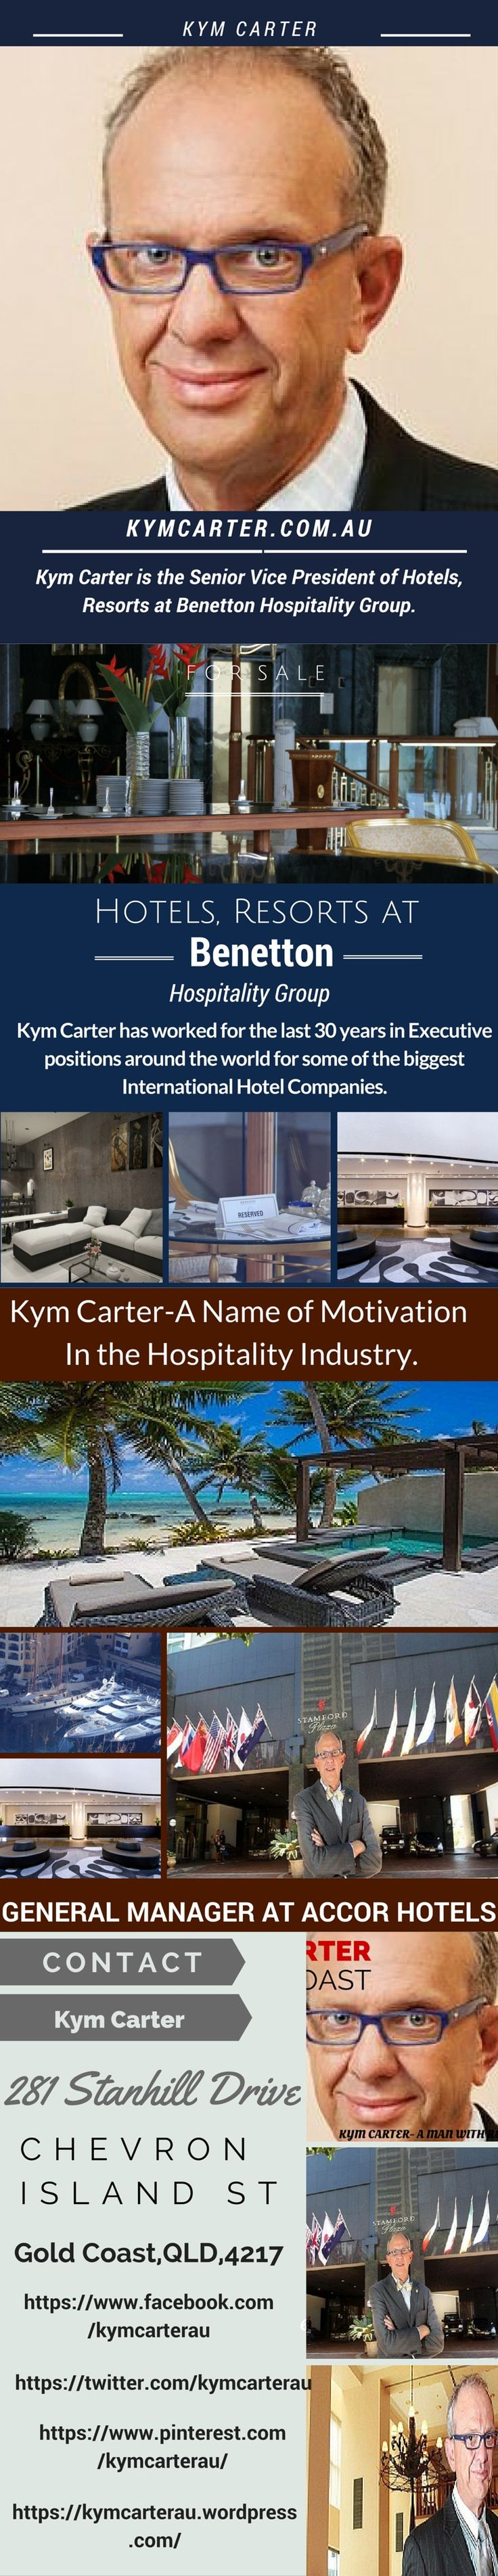 #Kym #Carter is a role model and one of the most regarded professionals in the #Australian #hotel #industry.